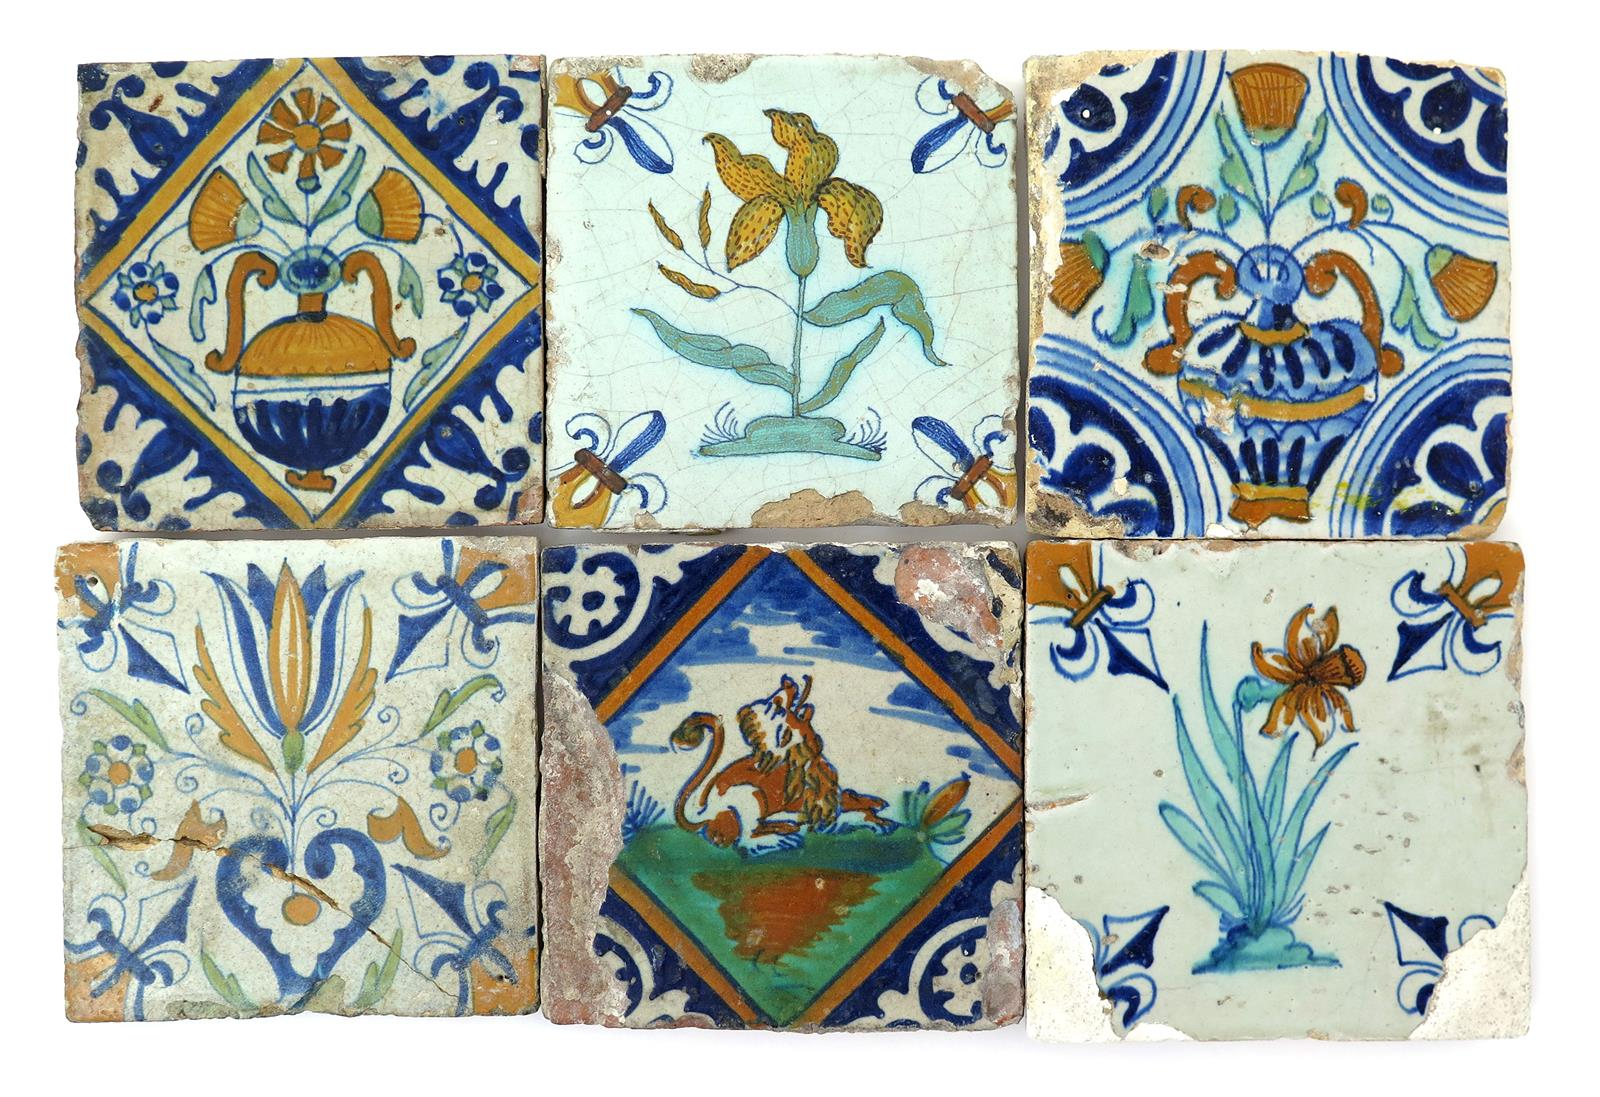 Six delft tiles early 17th century lot 1141 english and european english and european ceramics and glass lot 1141 dailygadgetfo Images